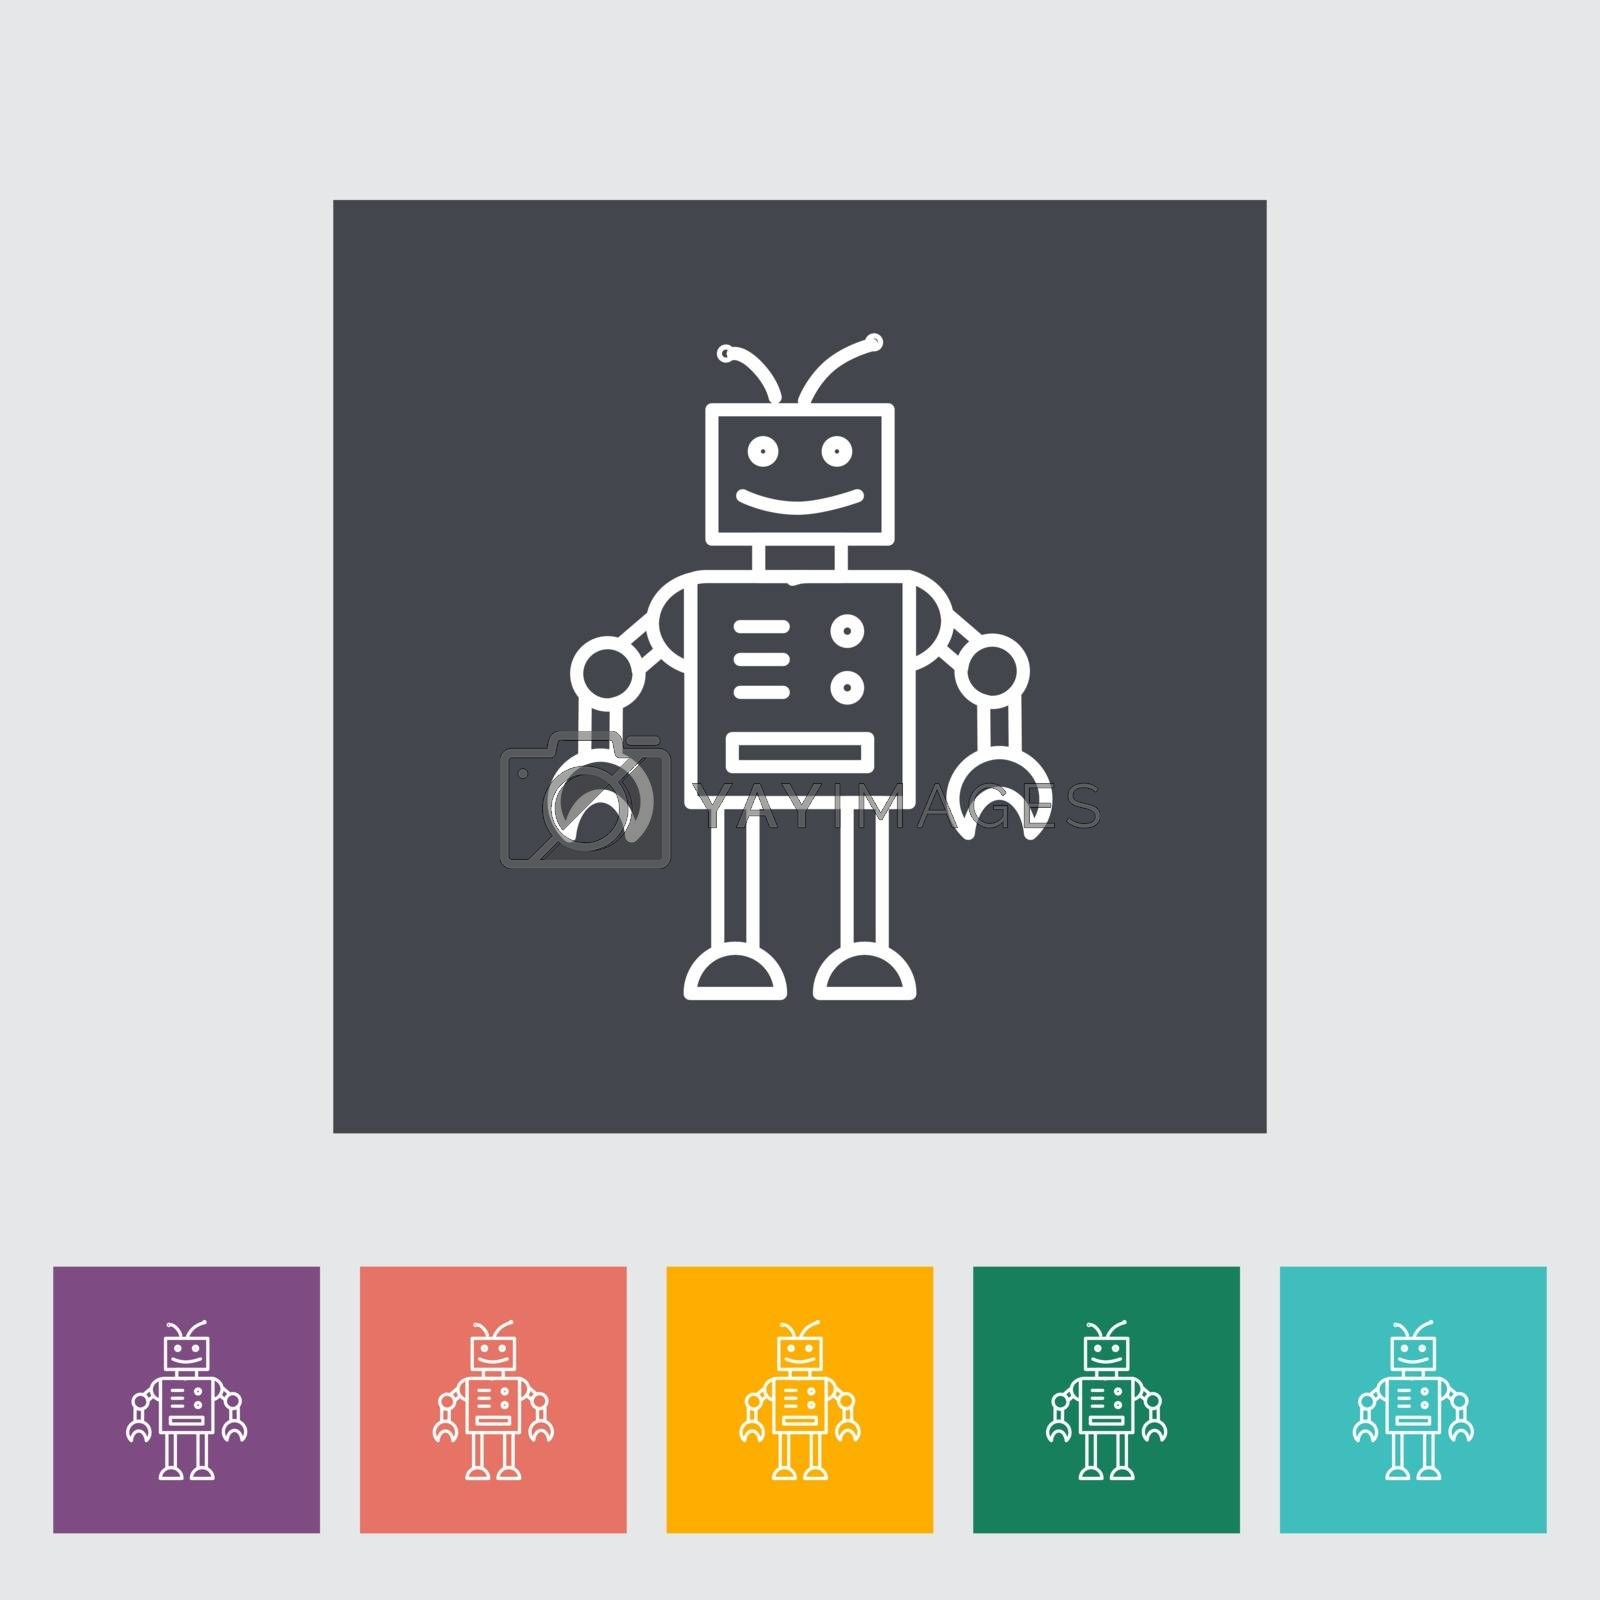 Robot toy thin line flat vector related icon set for web and mobile applications. It can be used as - pictogram, icon, infographic element. Vector Illustration.